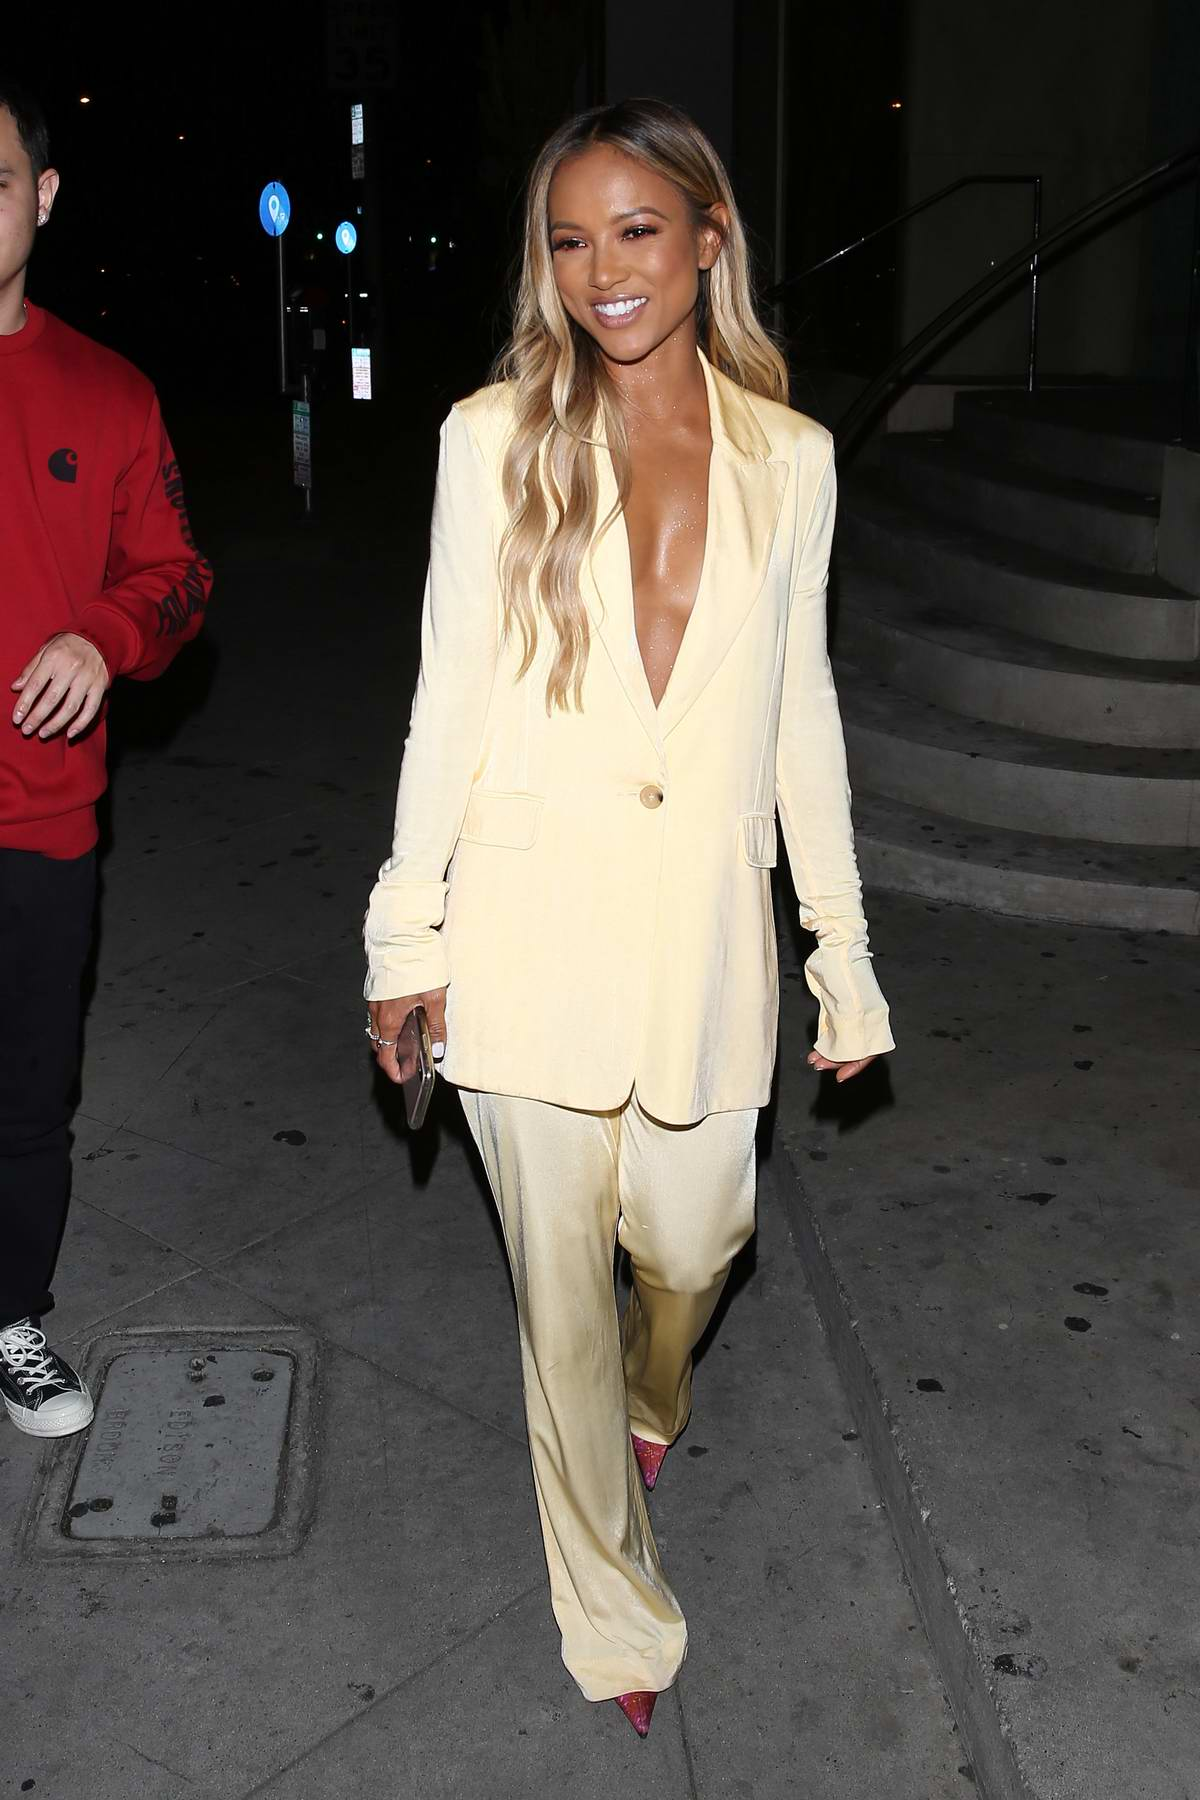 Karrueche Tran dressed in a gold suit celebrates her 31st birthday with friends and family at 'Catch LA' in West Hollywood, Los Angeles